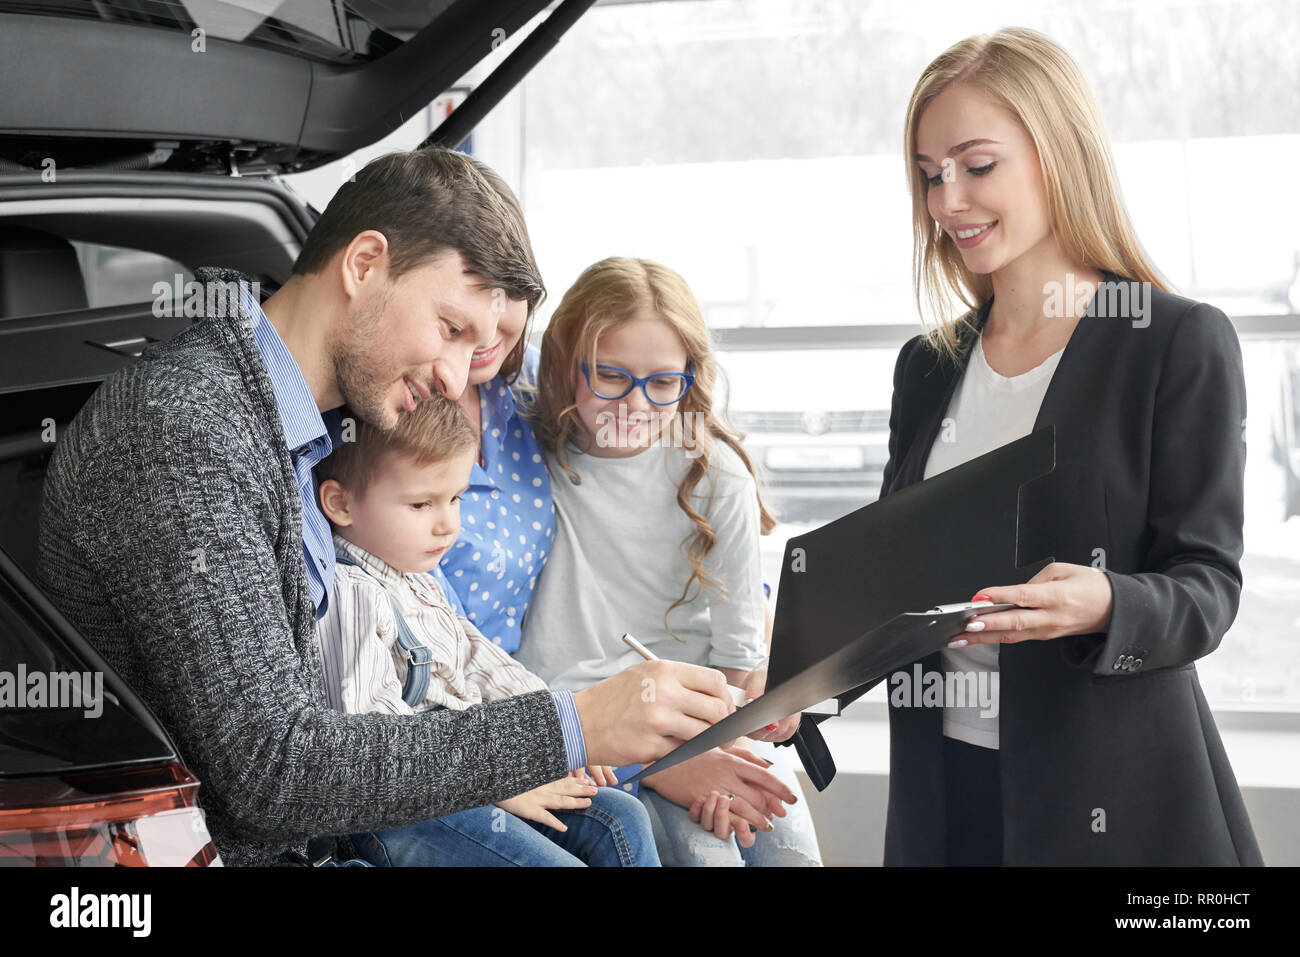 Beautiful woman working as car dealer, holding black folder with document. Man signing contract, purchasing vehicle. Happy family sitting in car trunk, buying new automobile in car dealership. - Stock Image